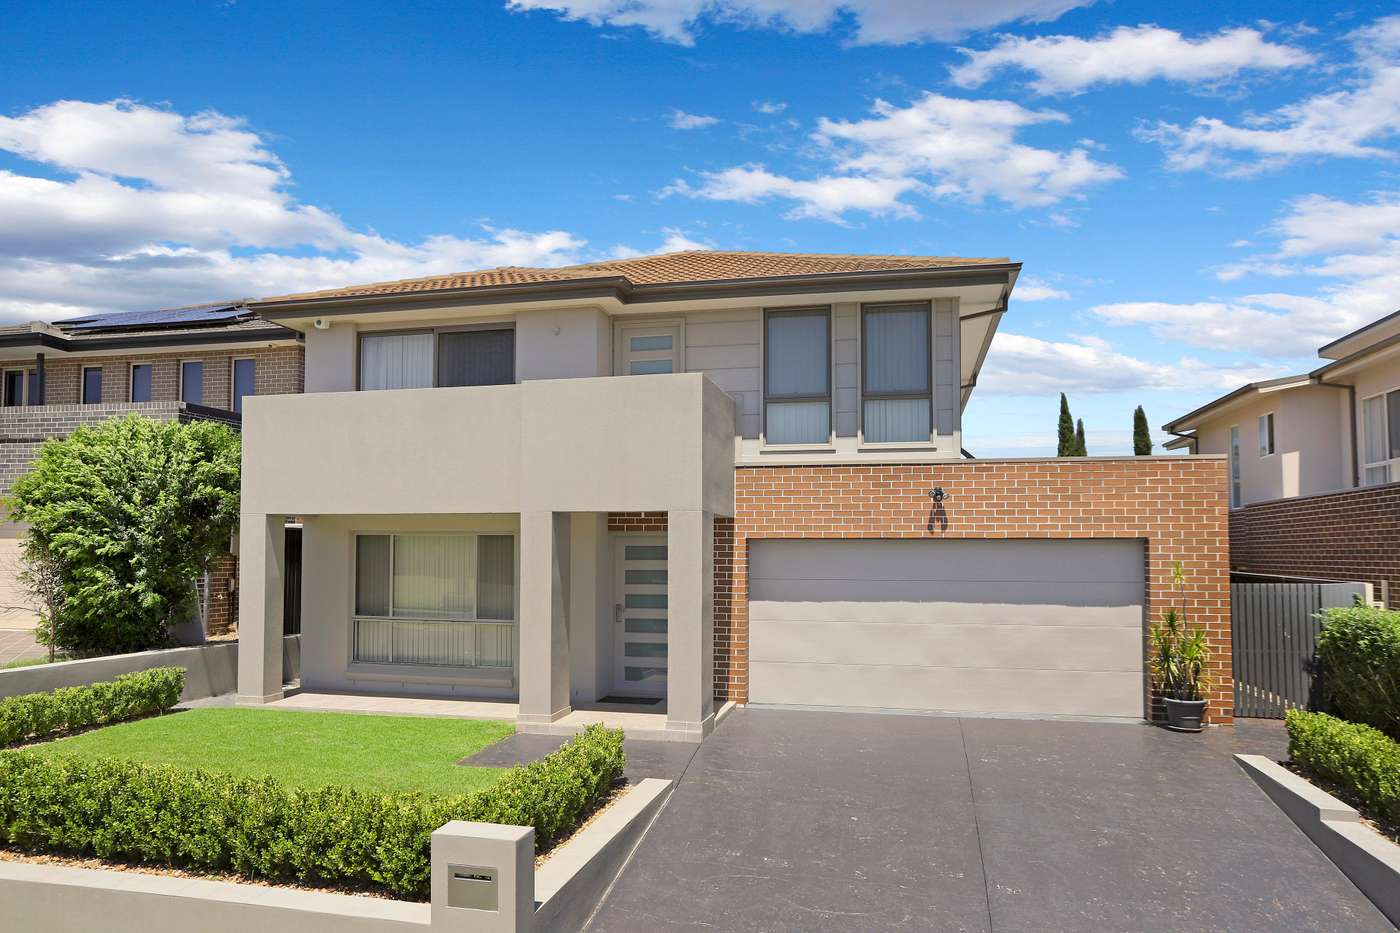 Main view of Homely house listing, 87 Yarrandale Street, Kellyville Ridge, NSW 2155